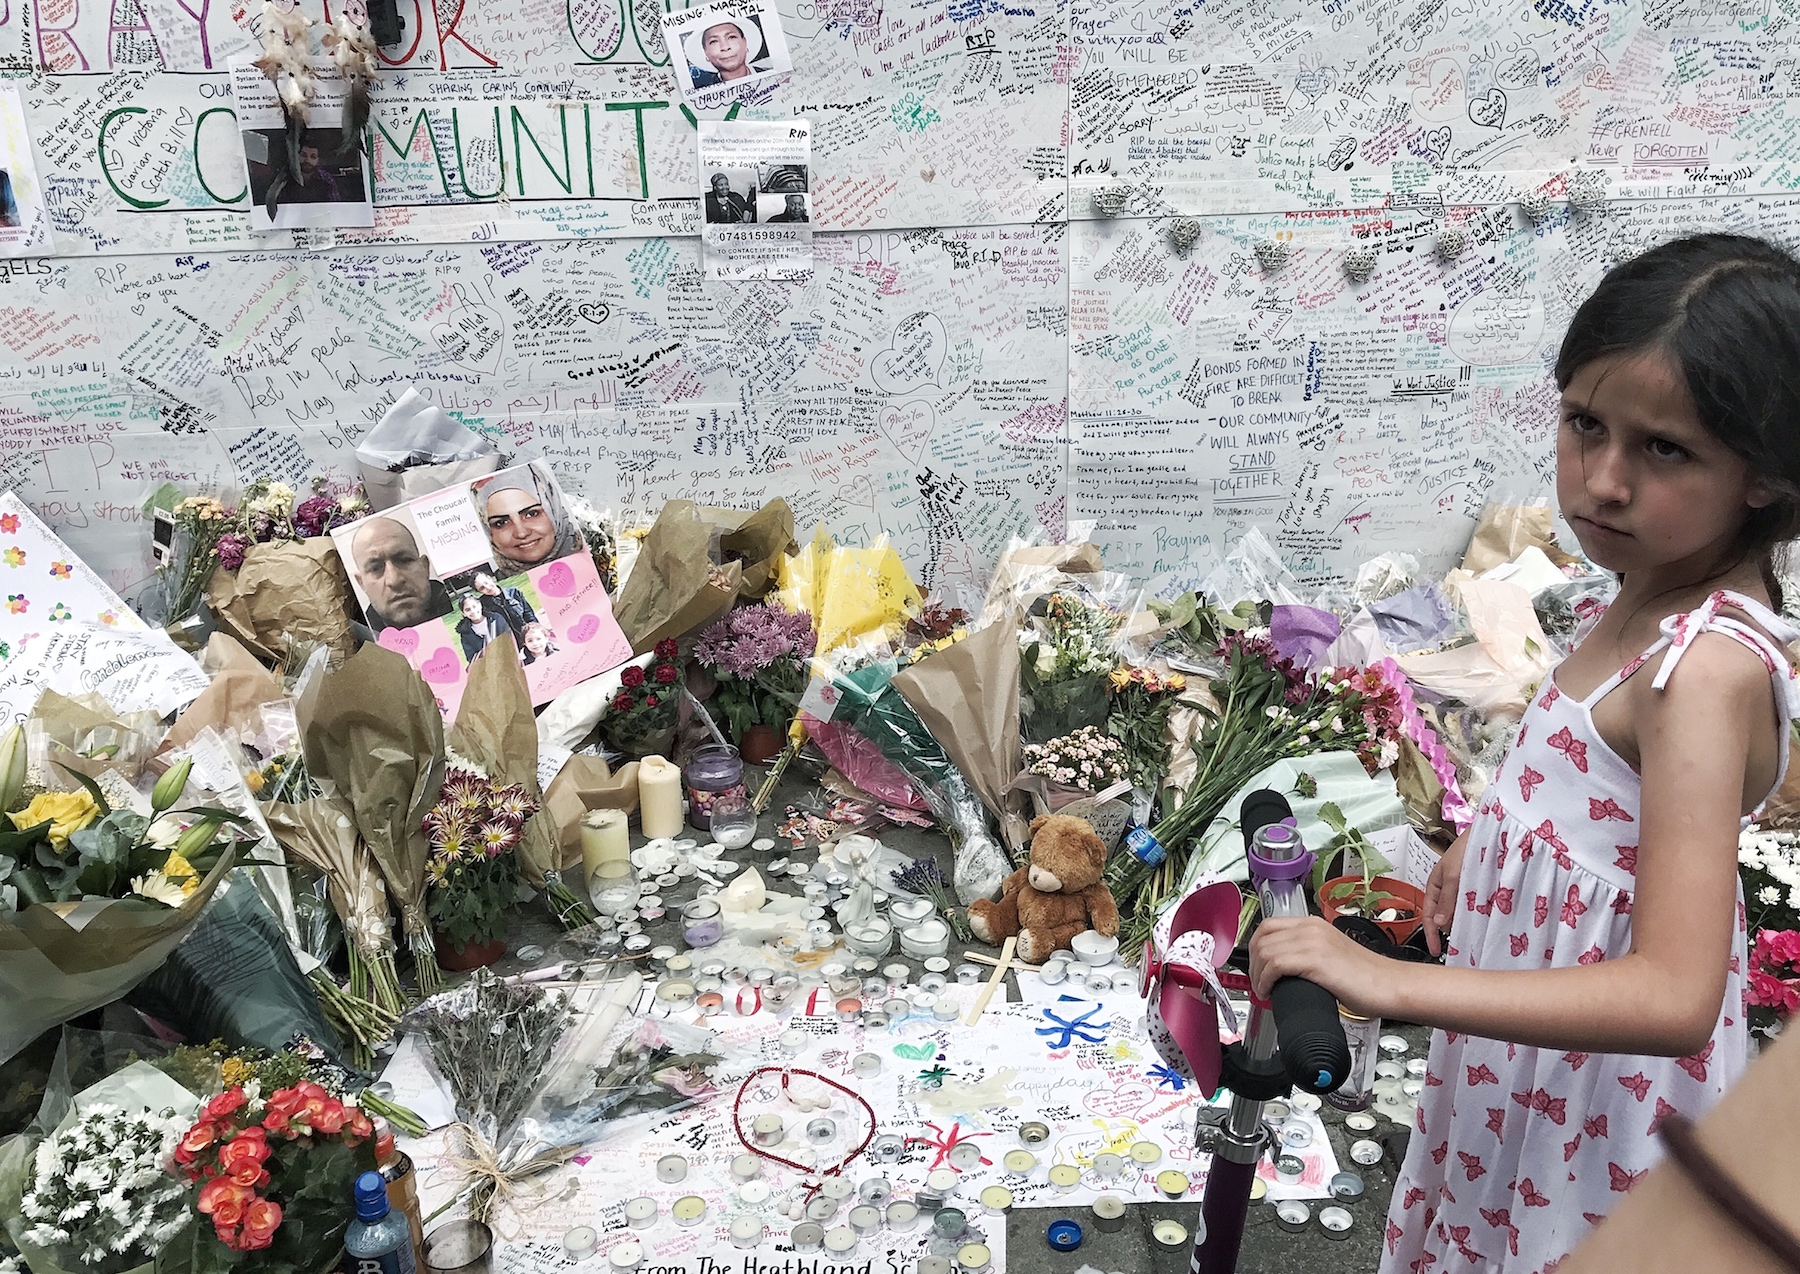 Little Girl looks on as people look for signs that there loved ones are still alive. Grenfell Tower fire. London